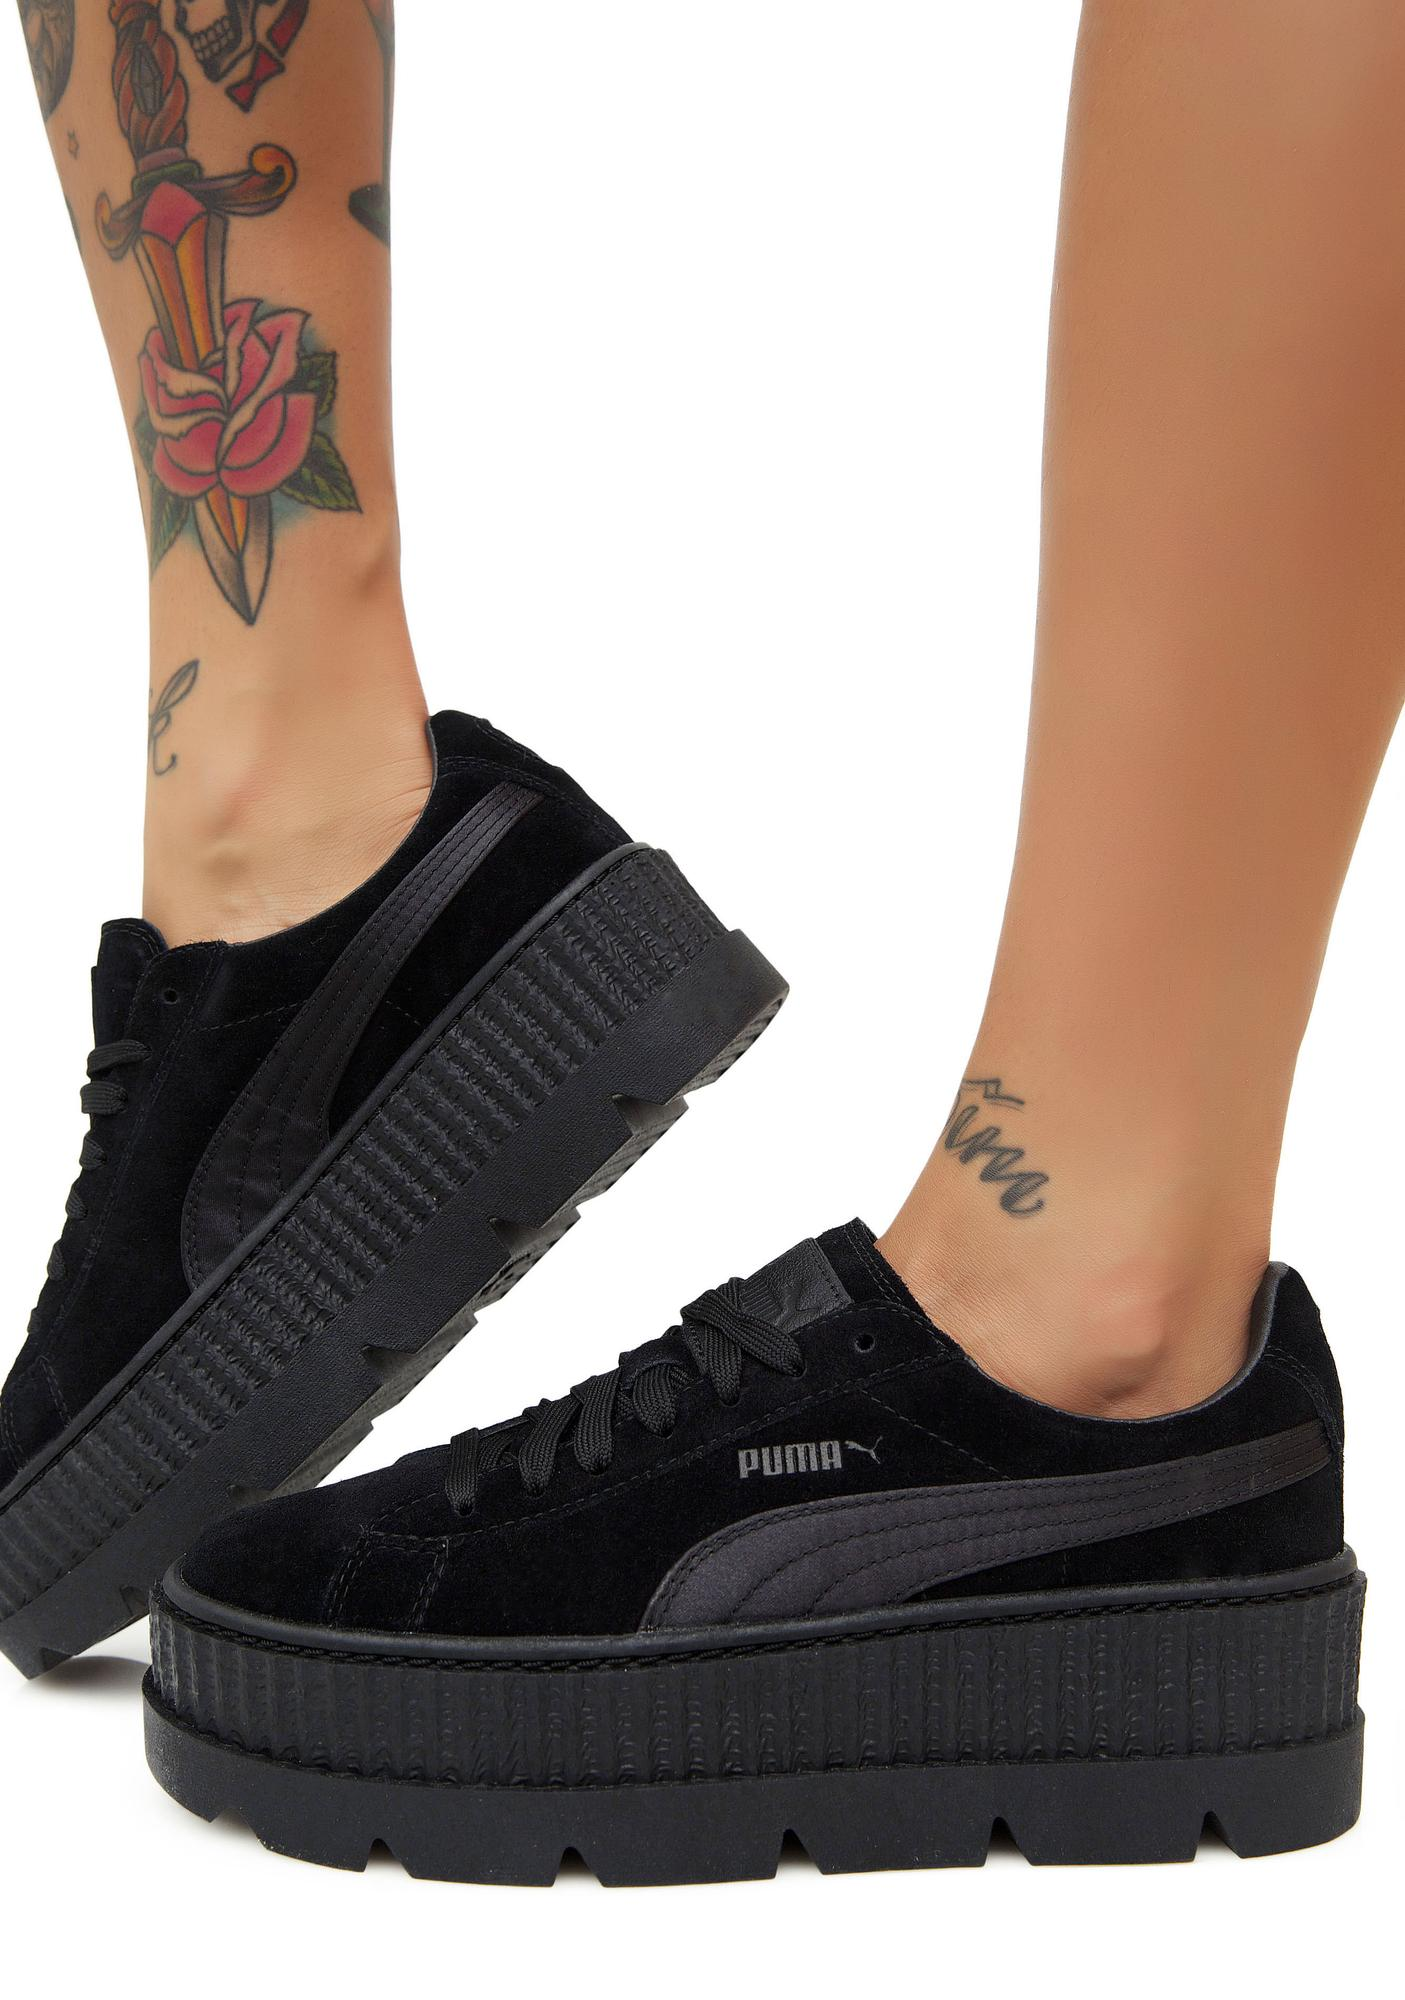 the best attitude 6562d 320a5 Onyx FENTY PUMA by Rihanna Cleated Suede Creepers